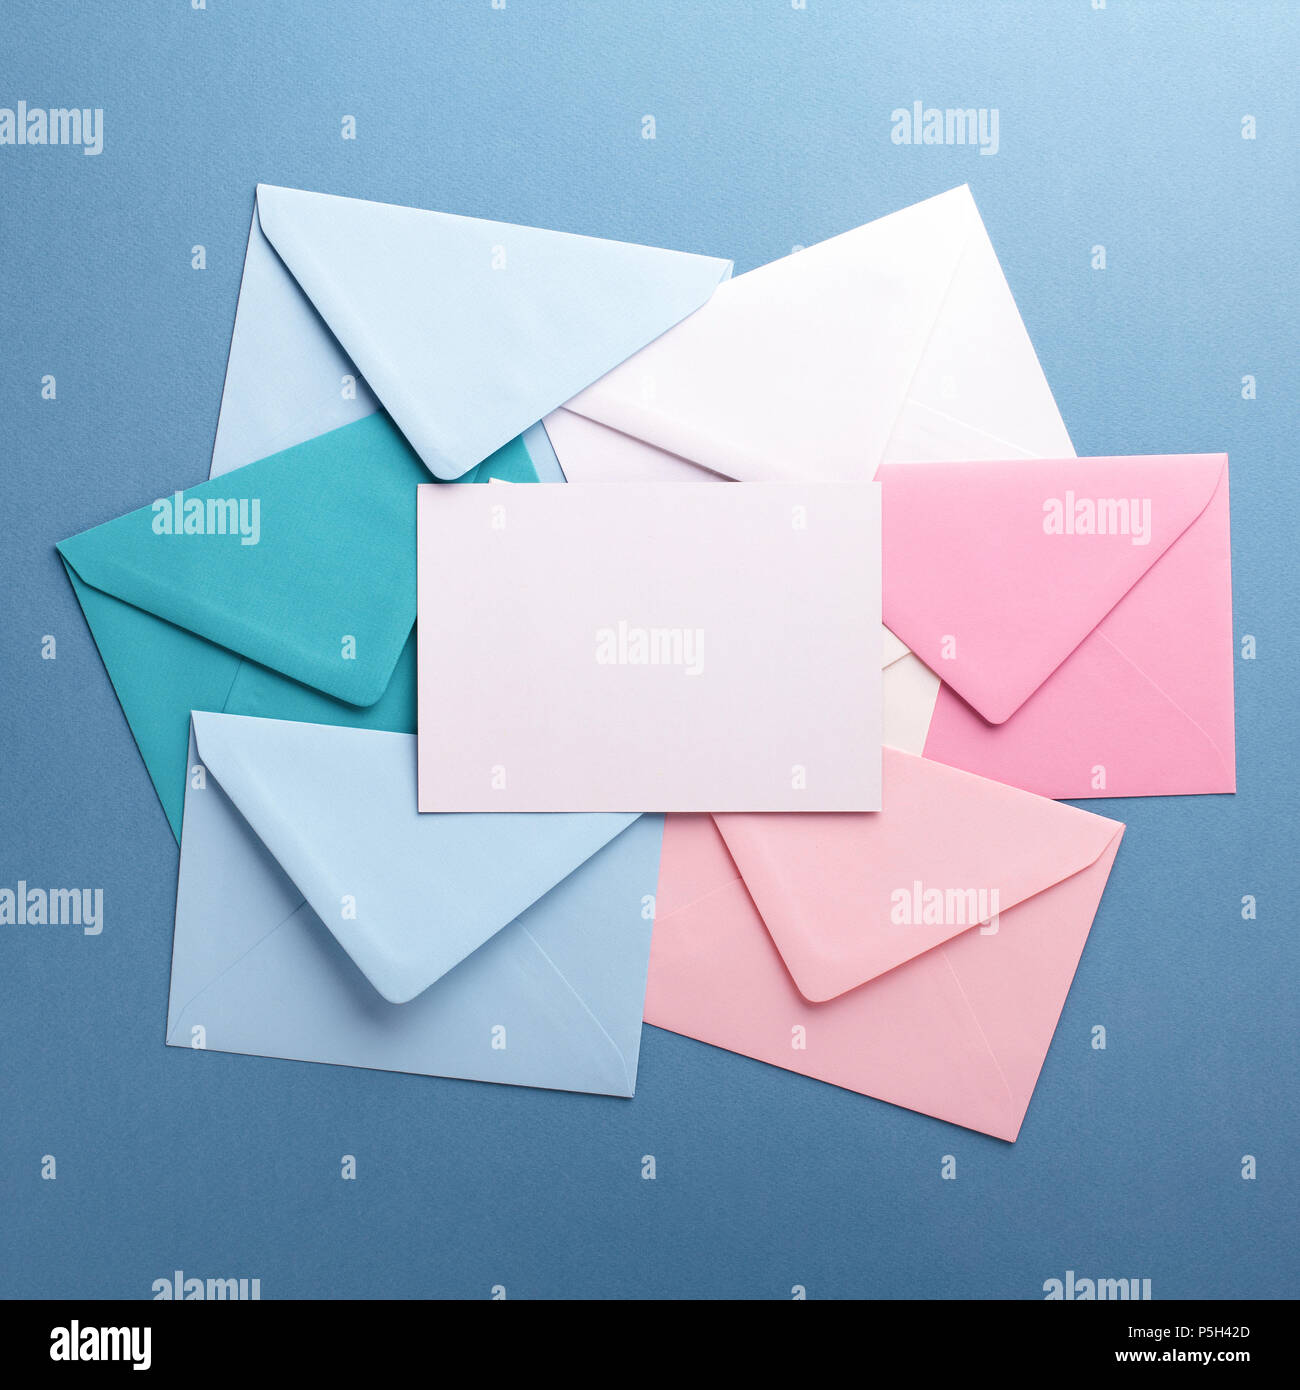 Group of colorful envelopes on grey table with empty card. Correspondence concept. Mockup. - Stock Image